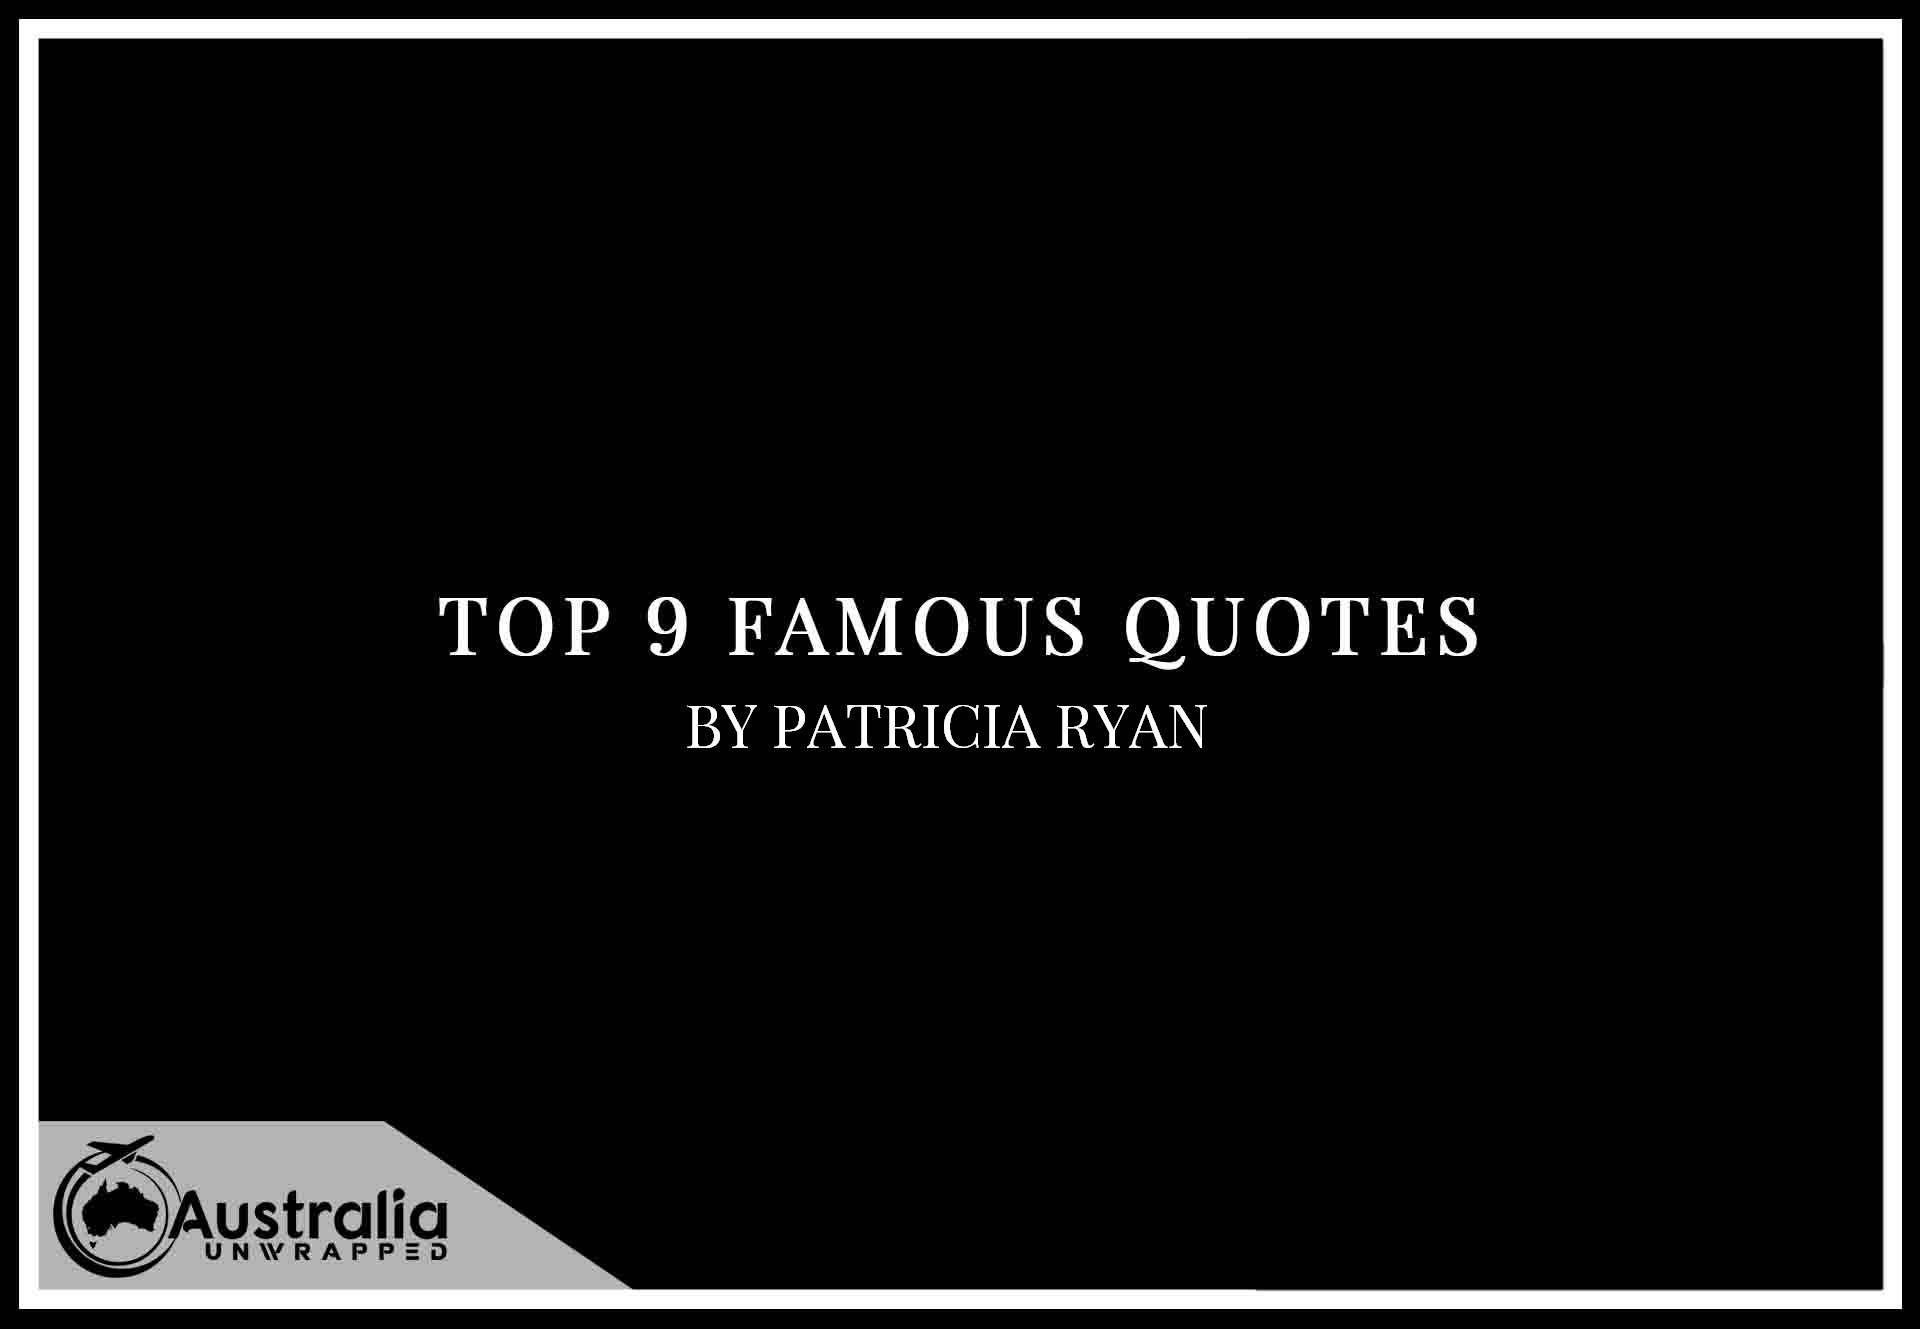 Top 8 Famous Quotes by Author P.B. Ryan